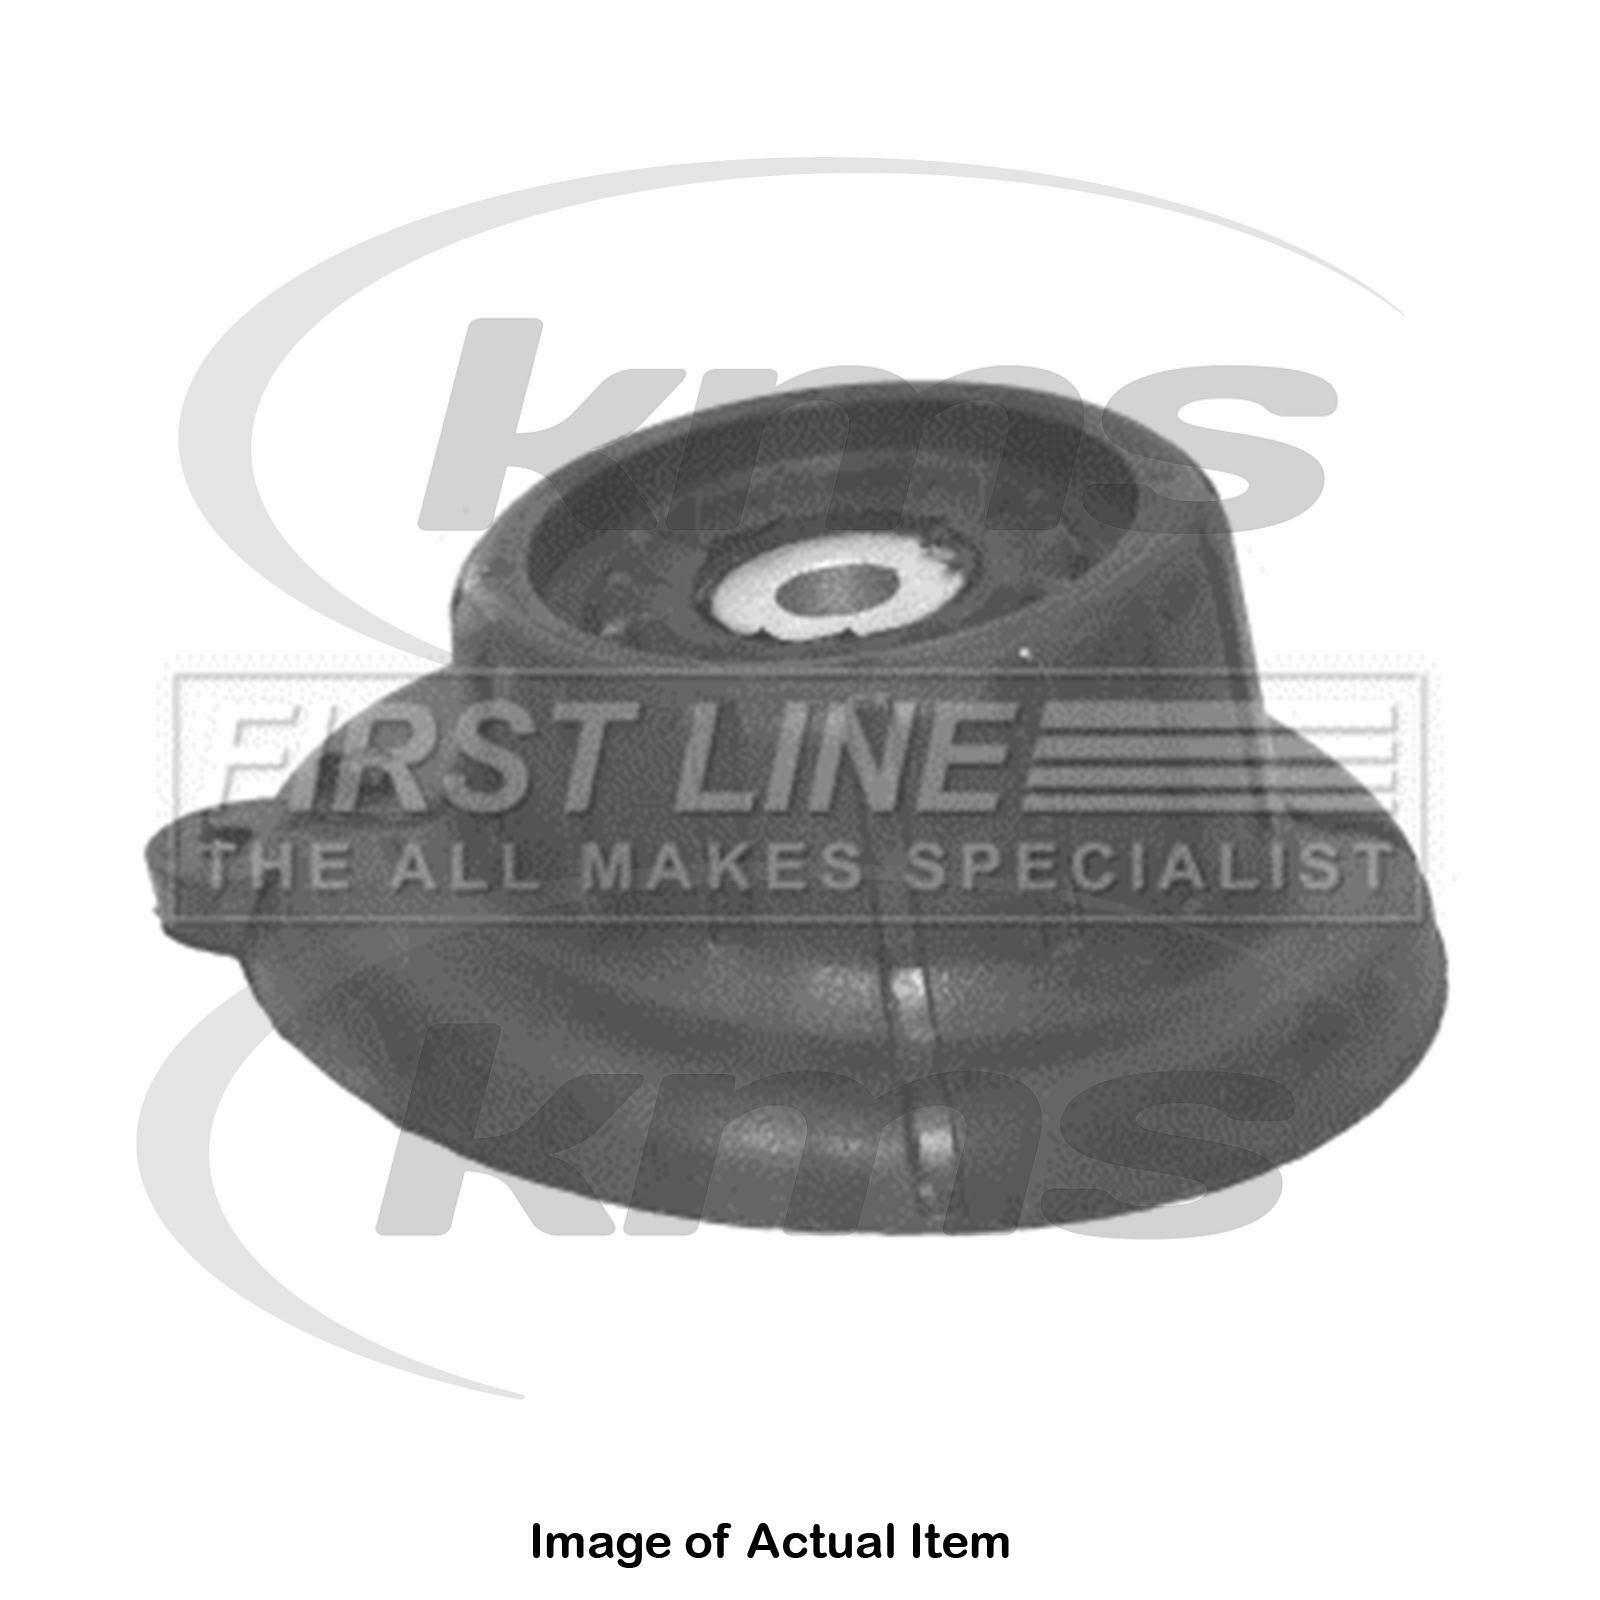 New Genuine FIRST LINE Suspension Top Strut Mounting FSM5024 Top Quality 2yrs No